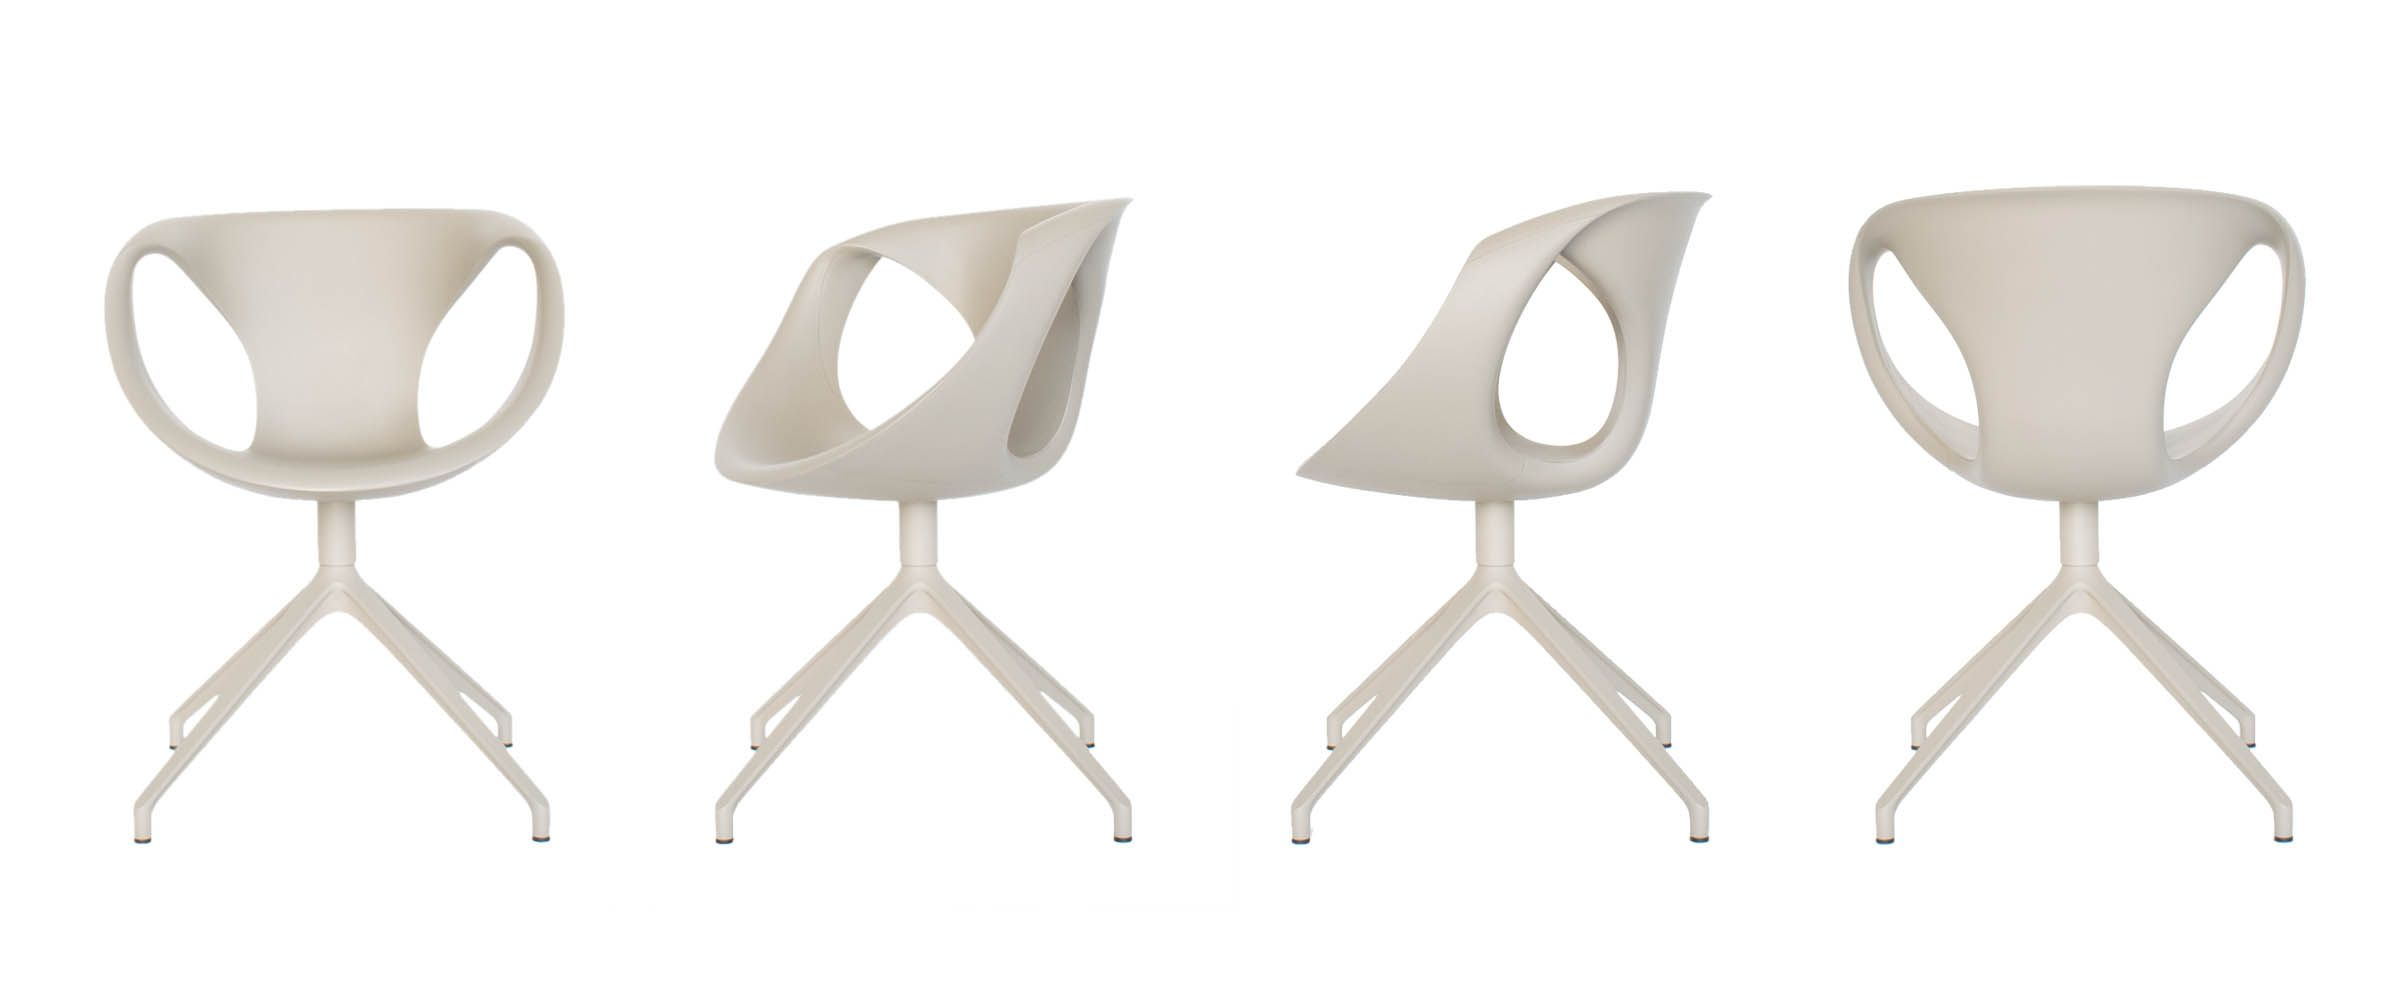 Tonon Up Chair 907 81 Design Stuhl Design